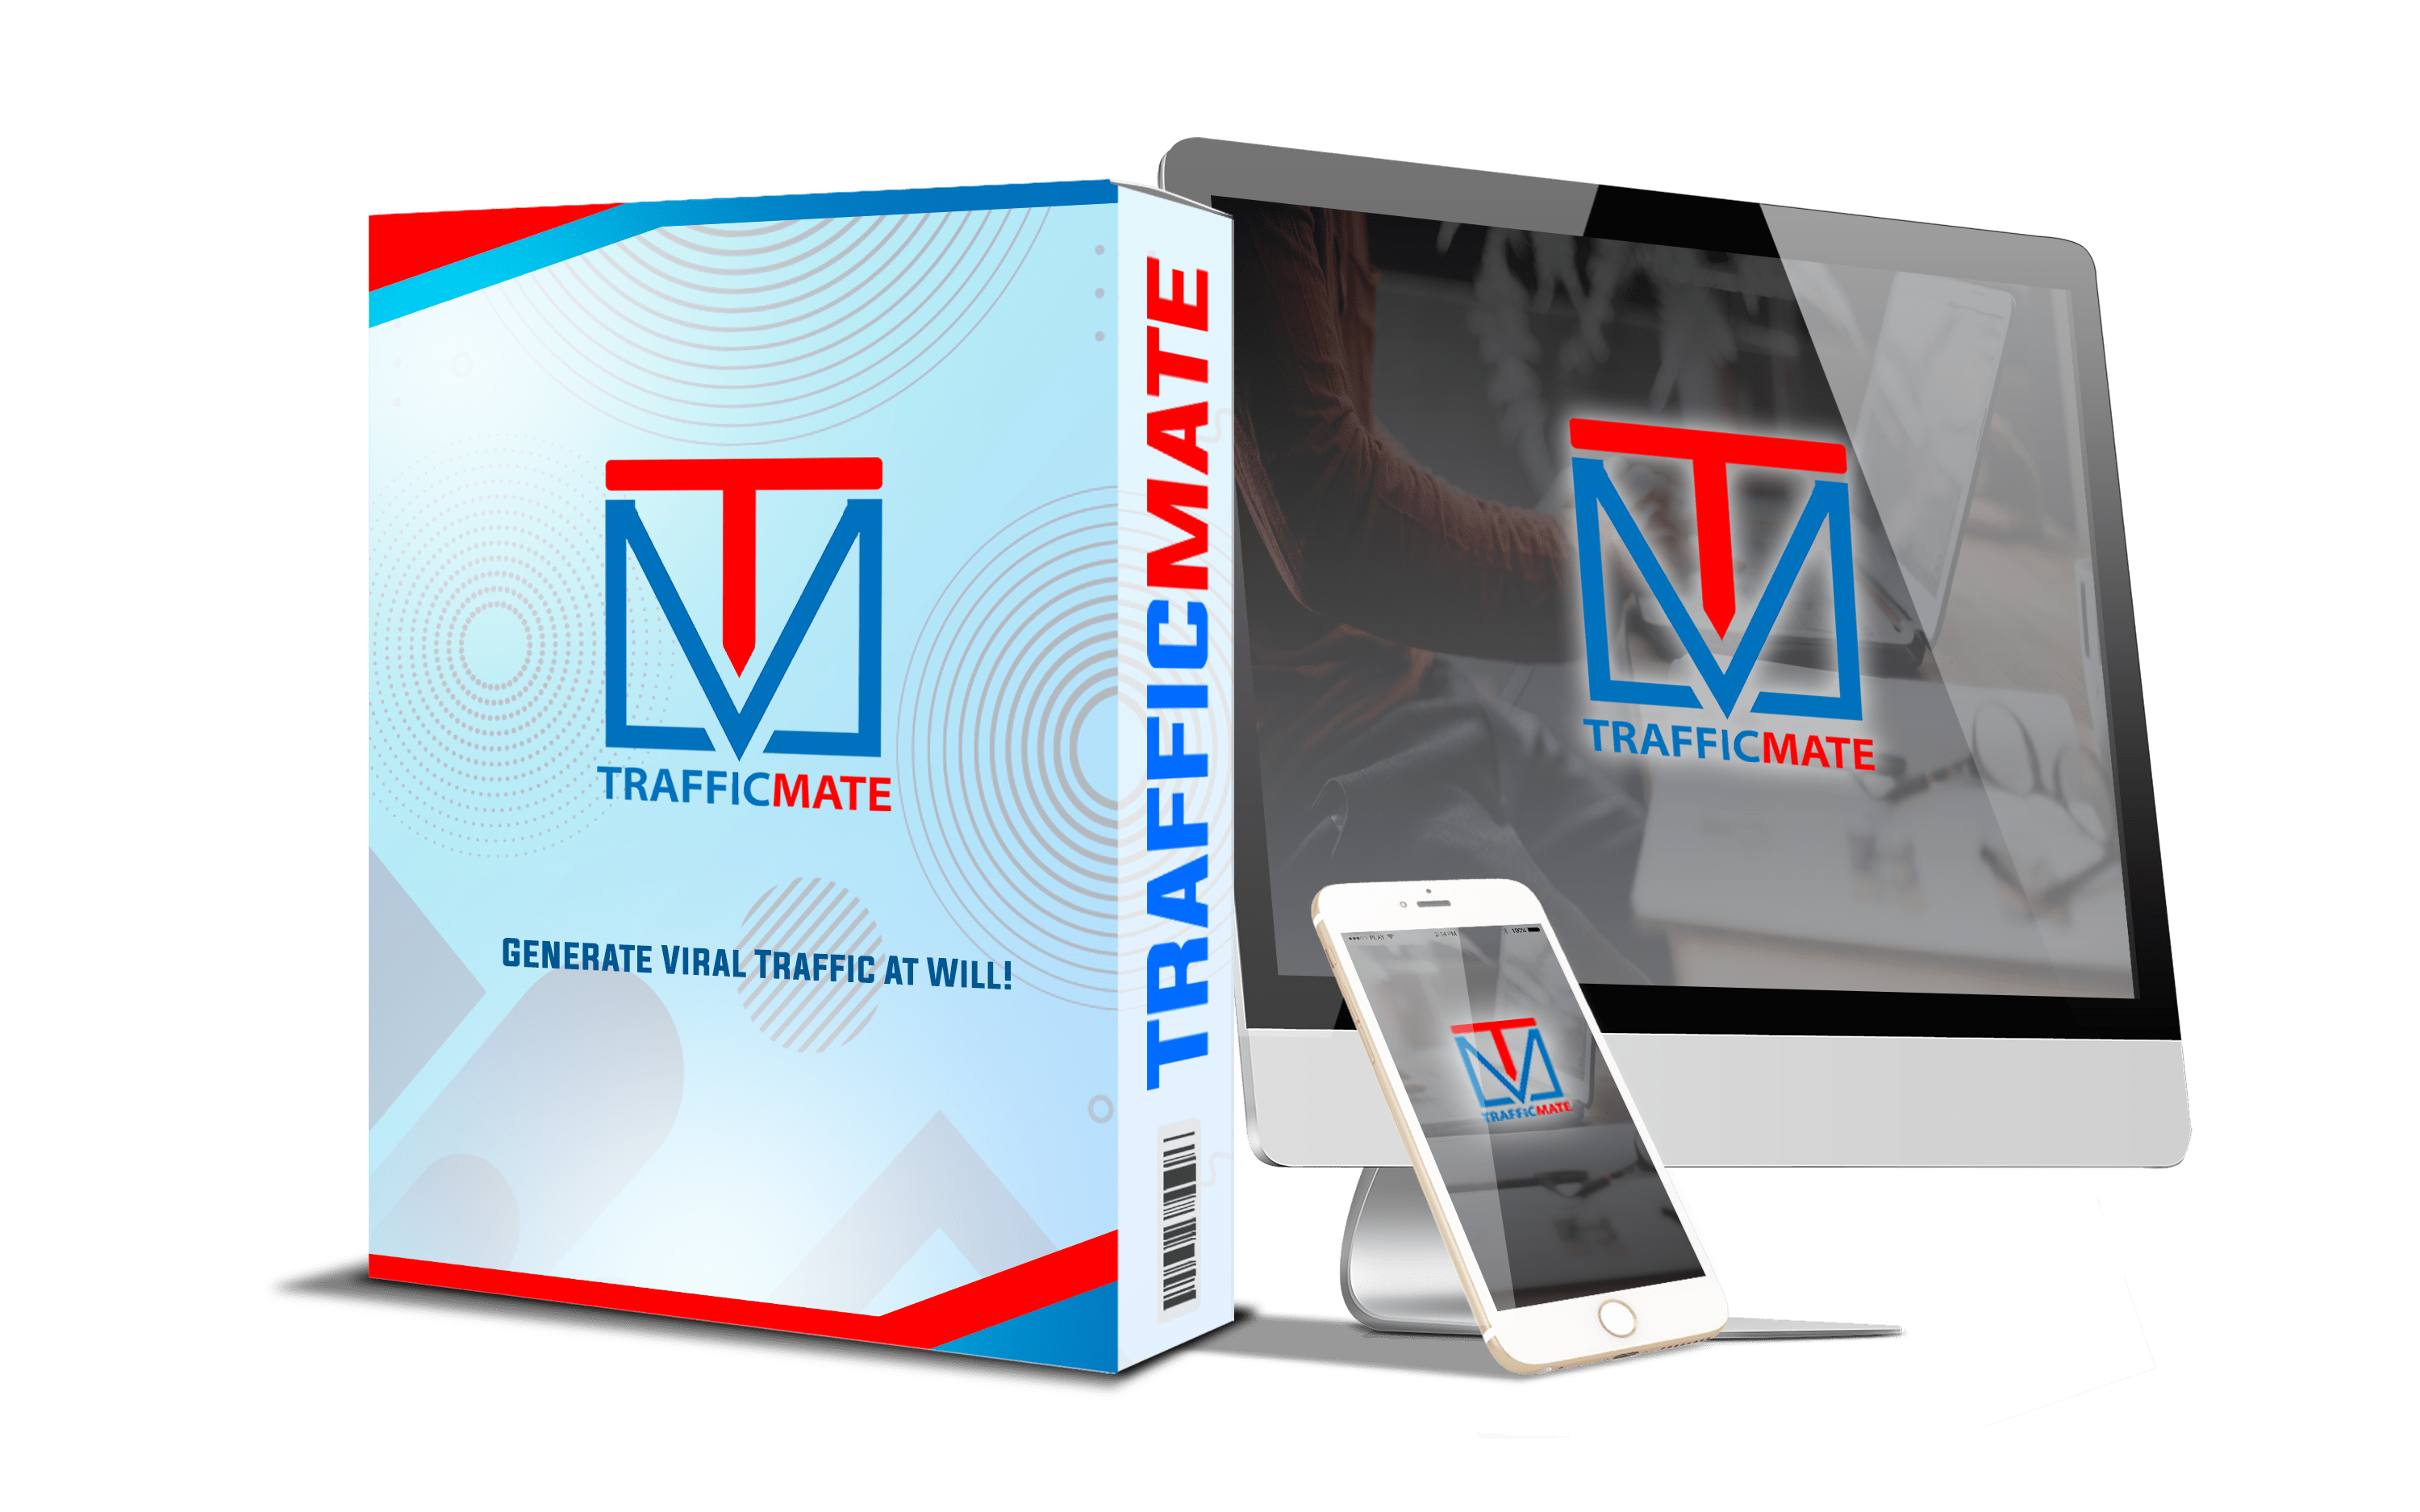 [GET] Traffic Mate – Generate Viral Traffic At Will! Download